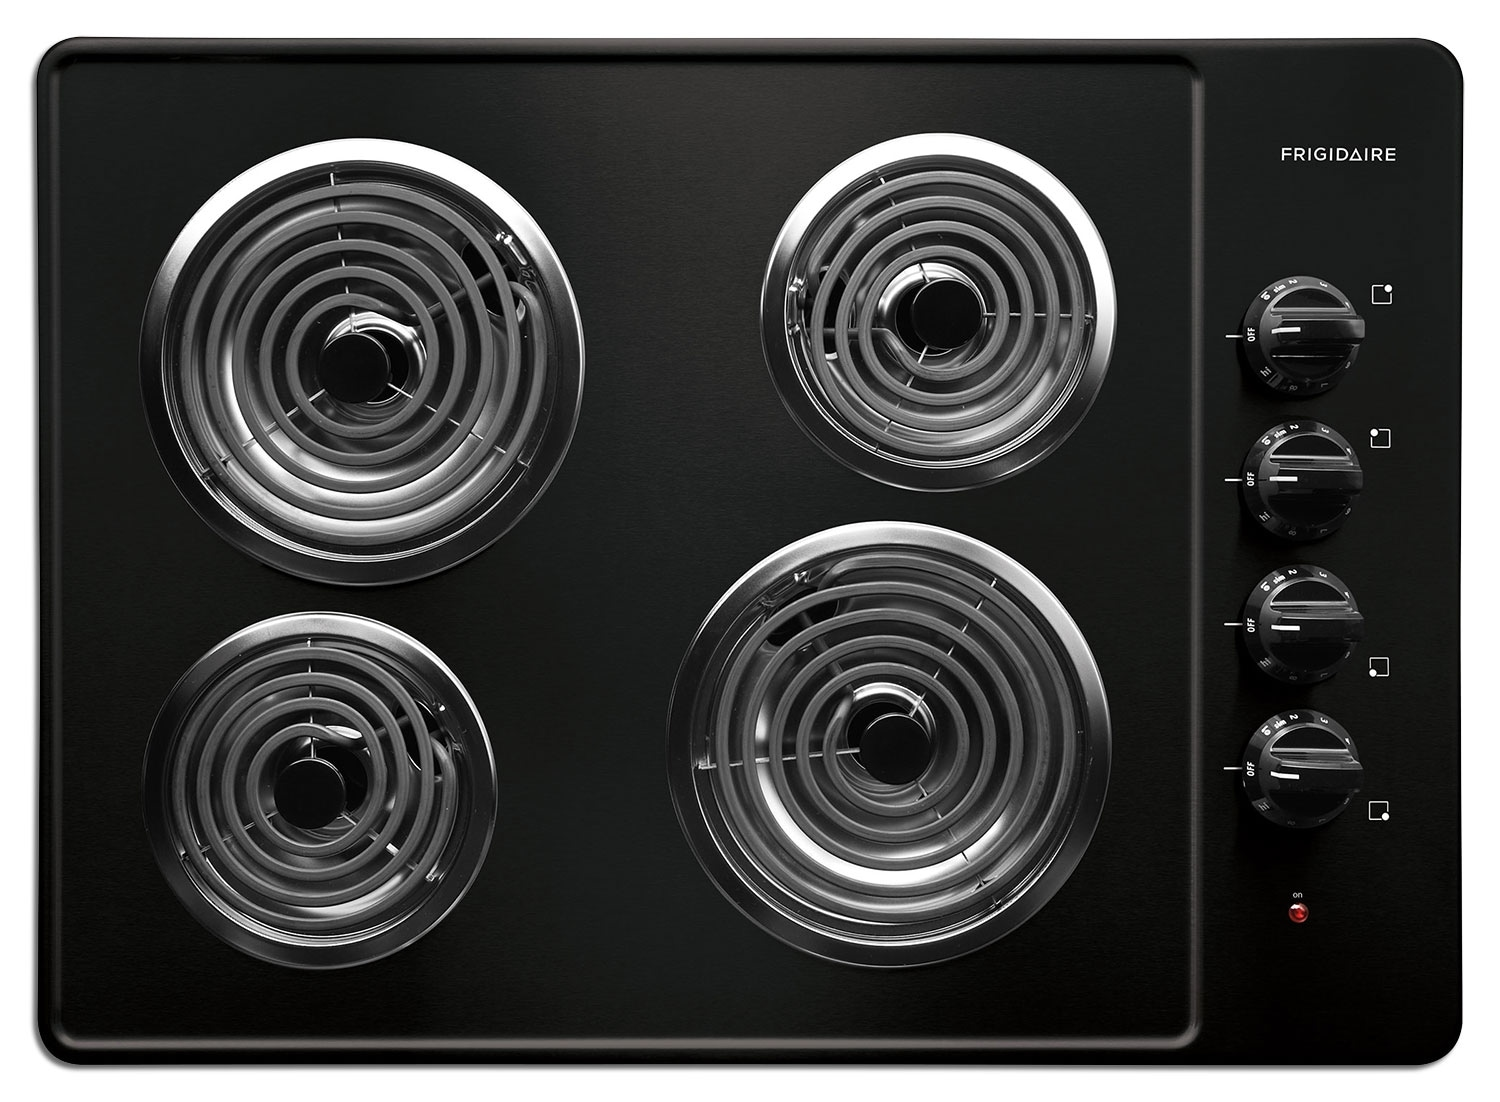 Cooking Products - Frigidaire Electric Cooktop FFEC3005LB